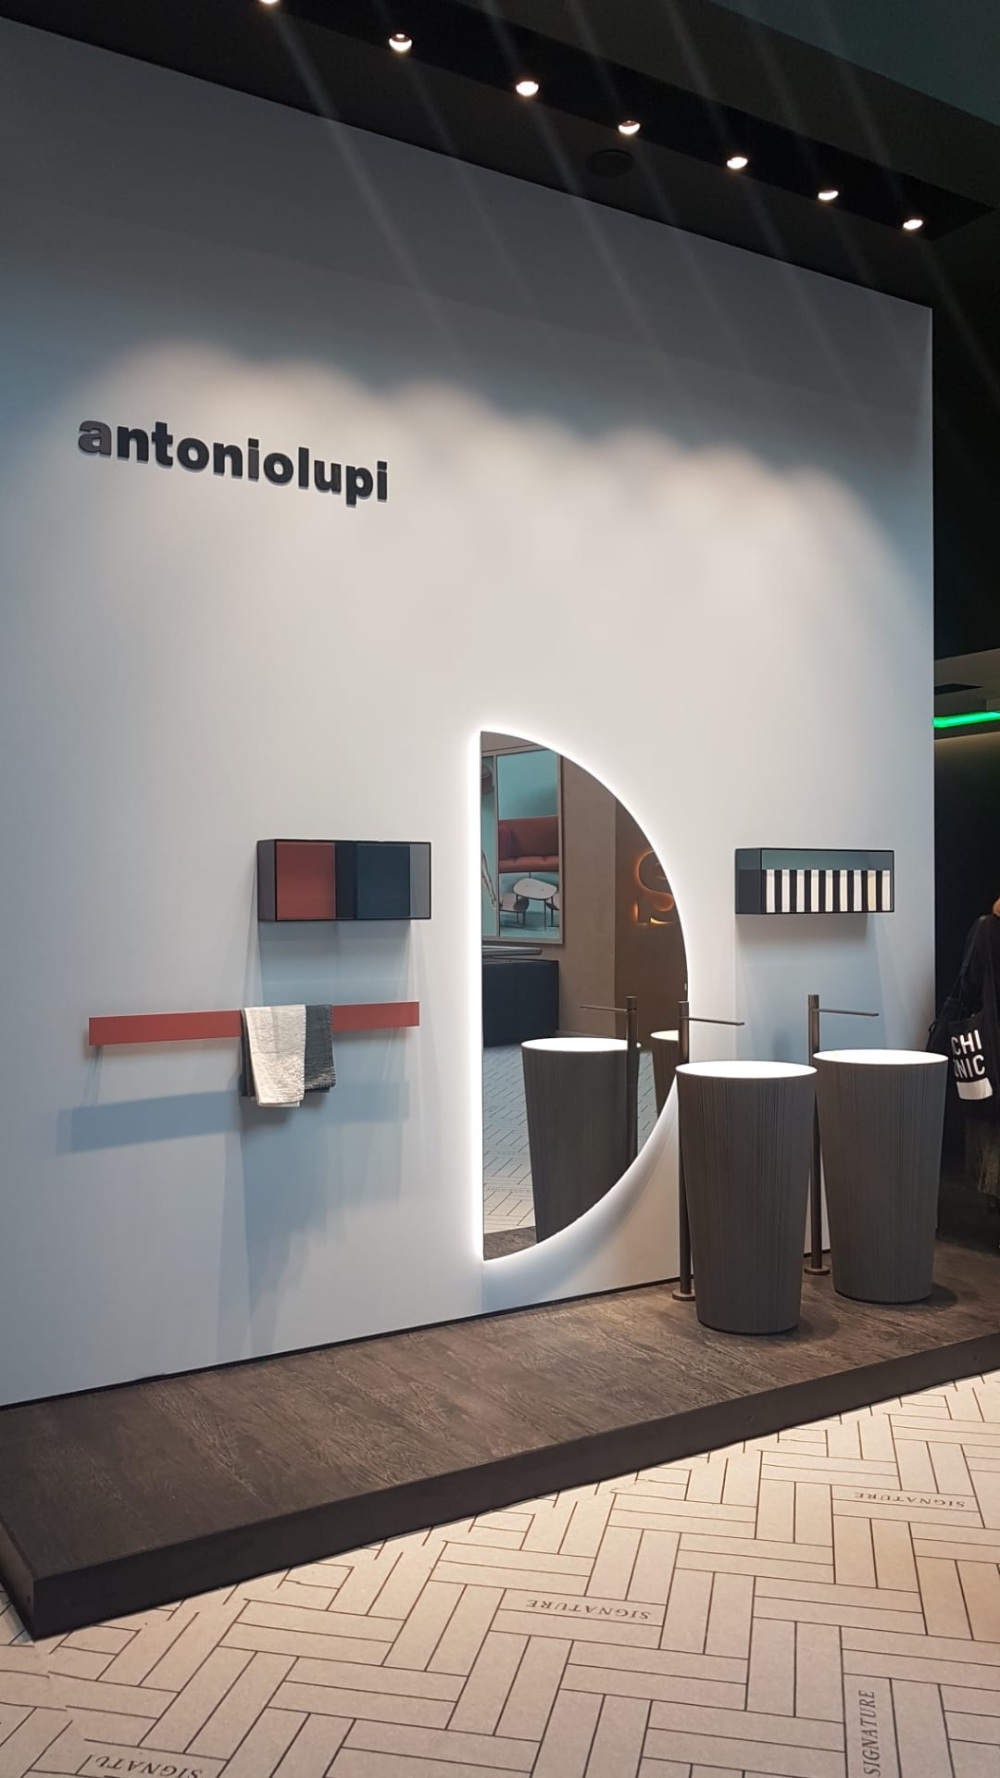 The Best News & Trends Already Spotted at Maison et Objet 2020 31 (2) maison et objet The Best News & Trends Already Spotted at Maison et Objet 2020 The Best News Trends Already Spotted at Maison et Objet 2020 31 2